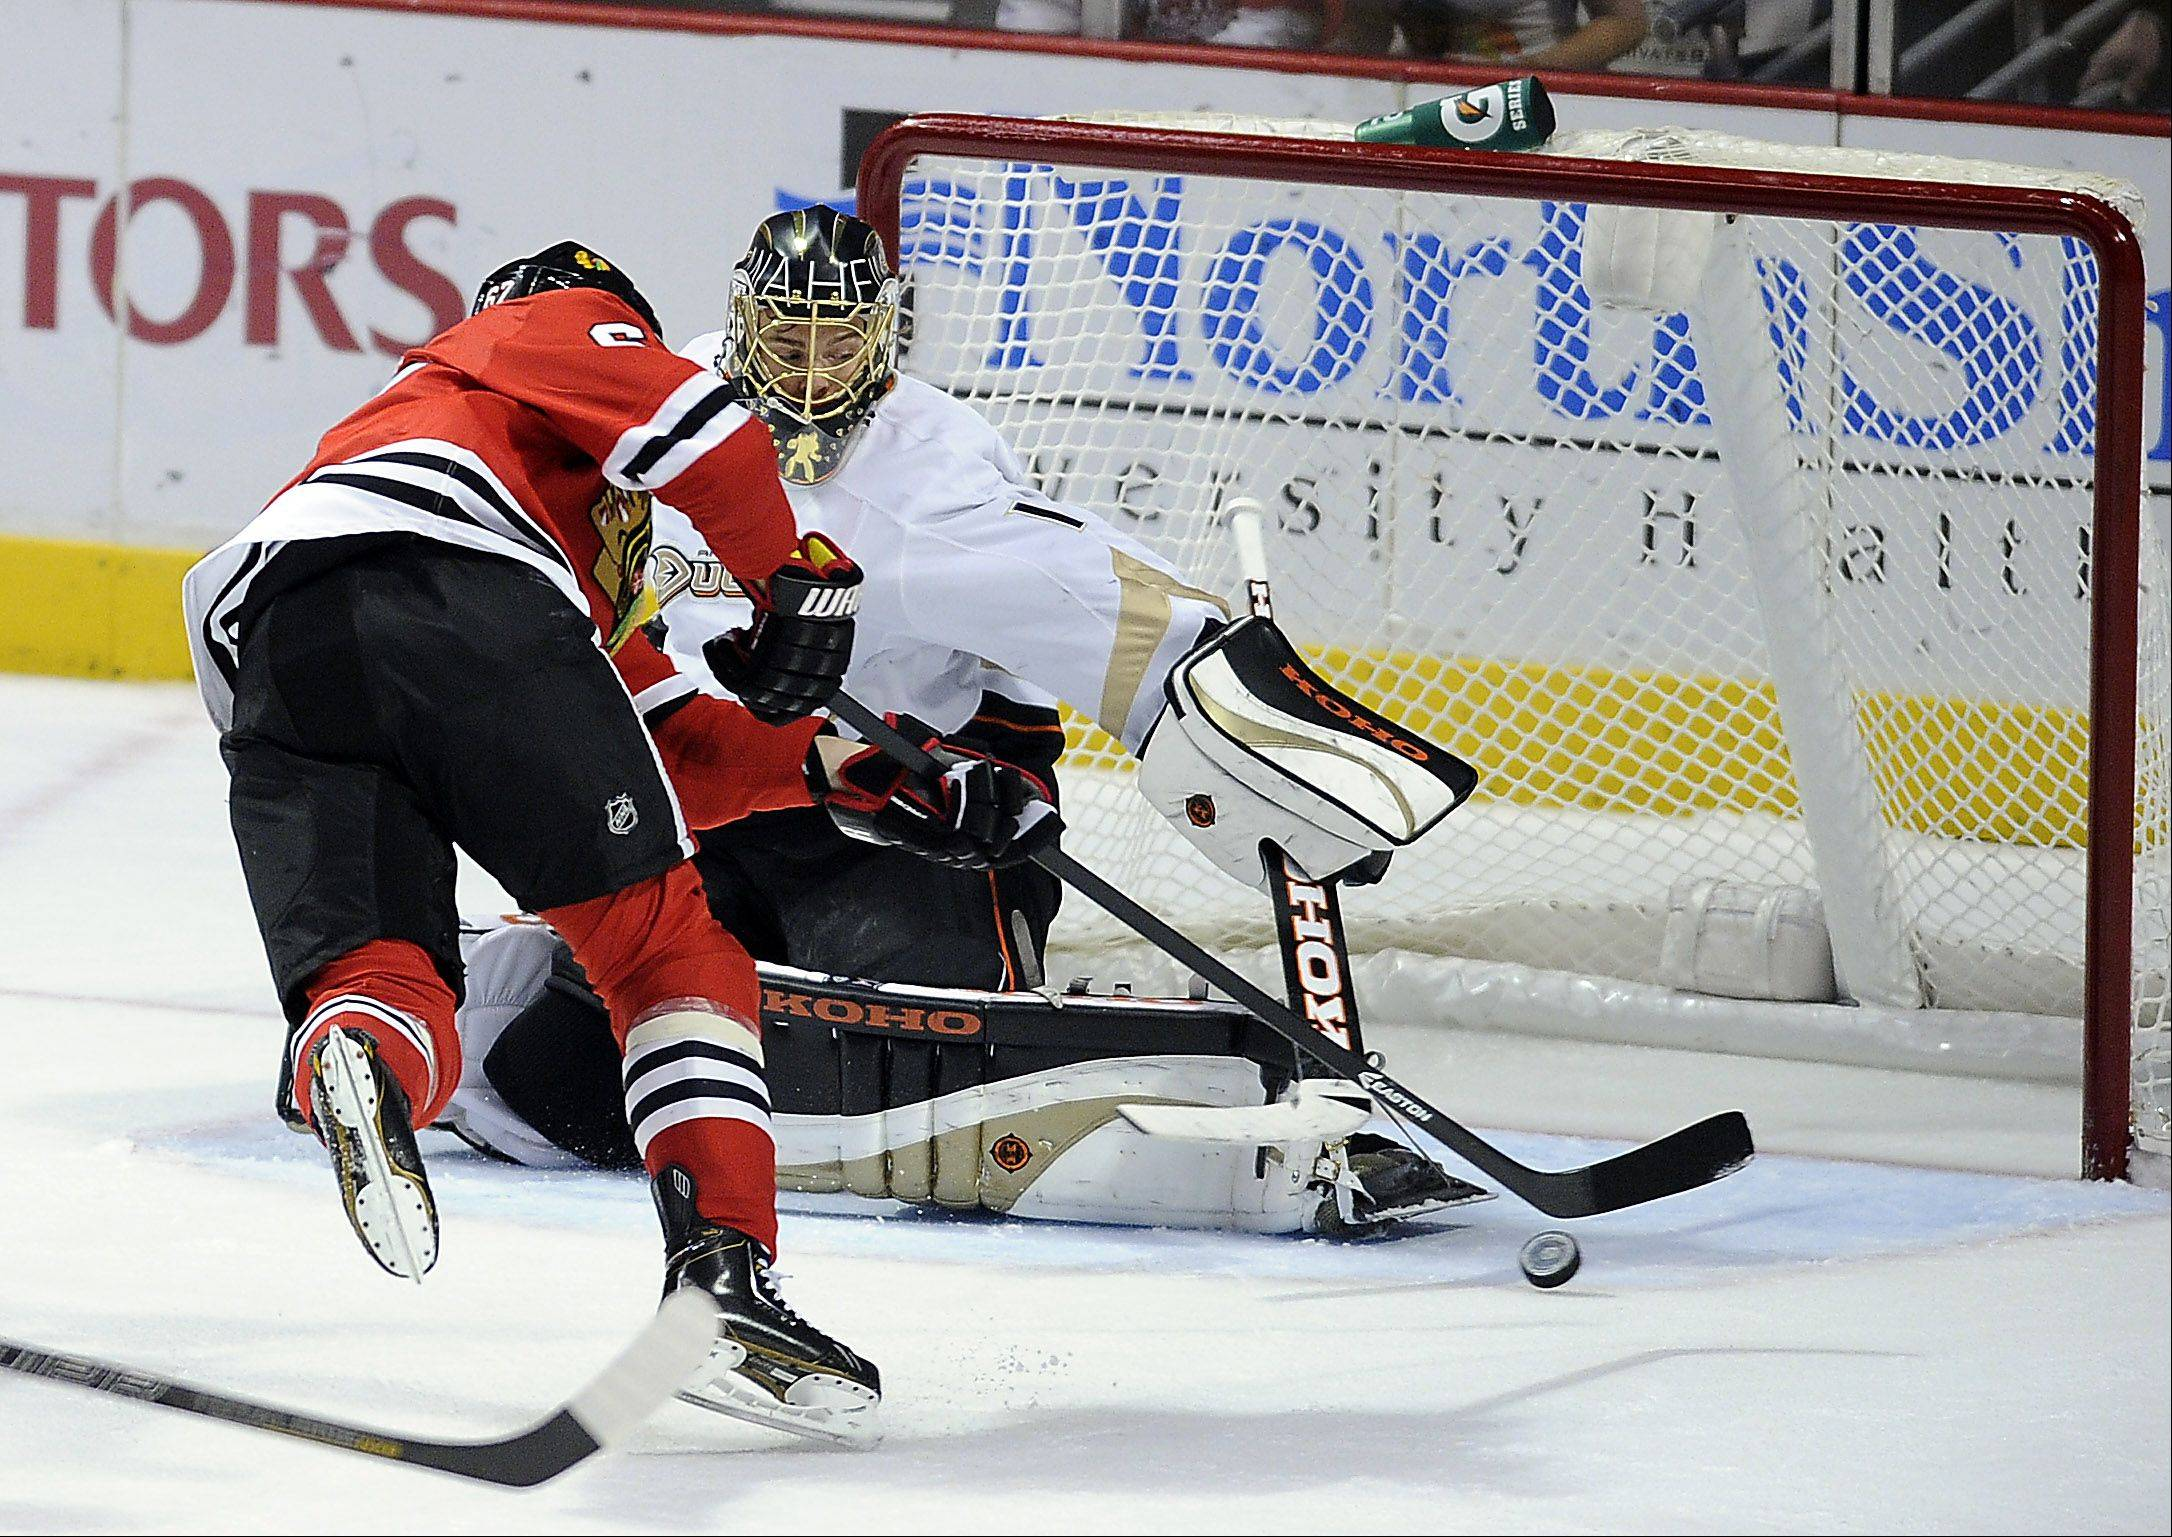 Mark Welsh/mwelsh@dailyherald.com Blackhawks Michael Frolik with a shot on goal against Anaheim's goalie Jonas Hiller that could have tied the game in the third period falls short at the United Center in Chicago on Friday.